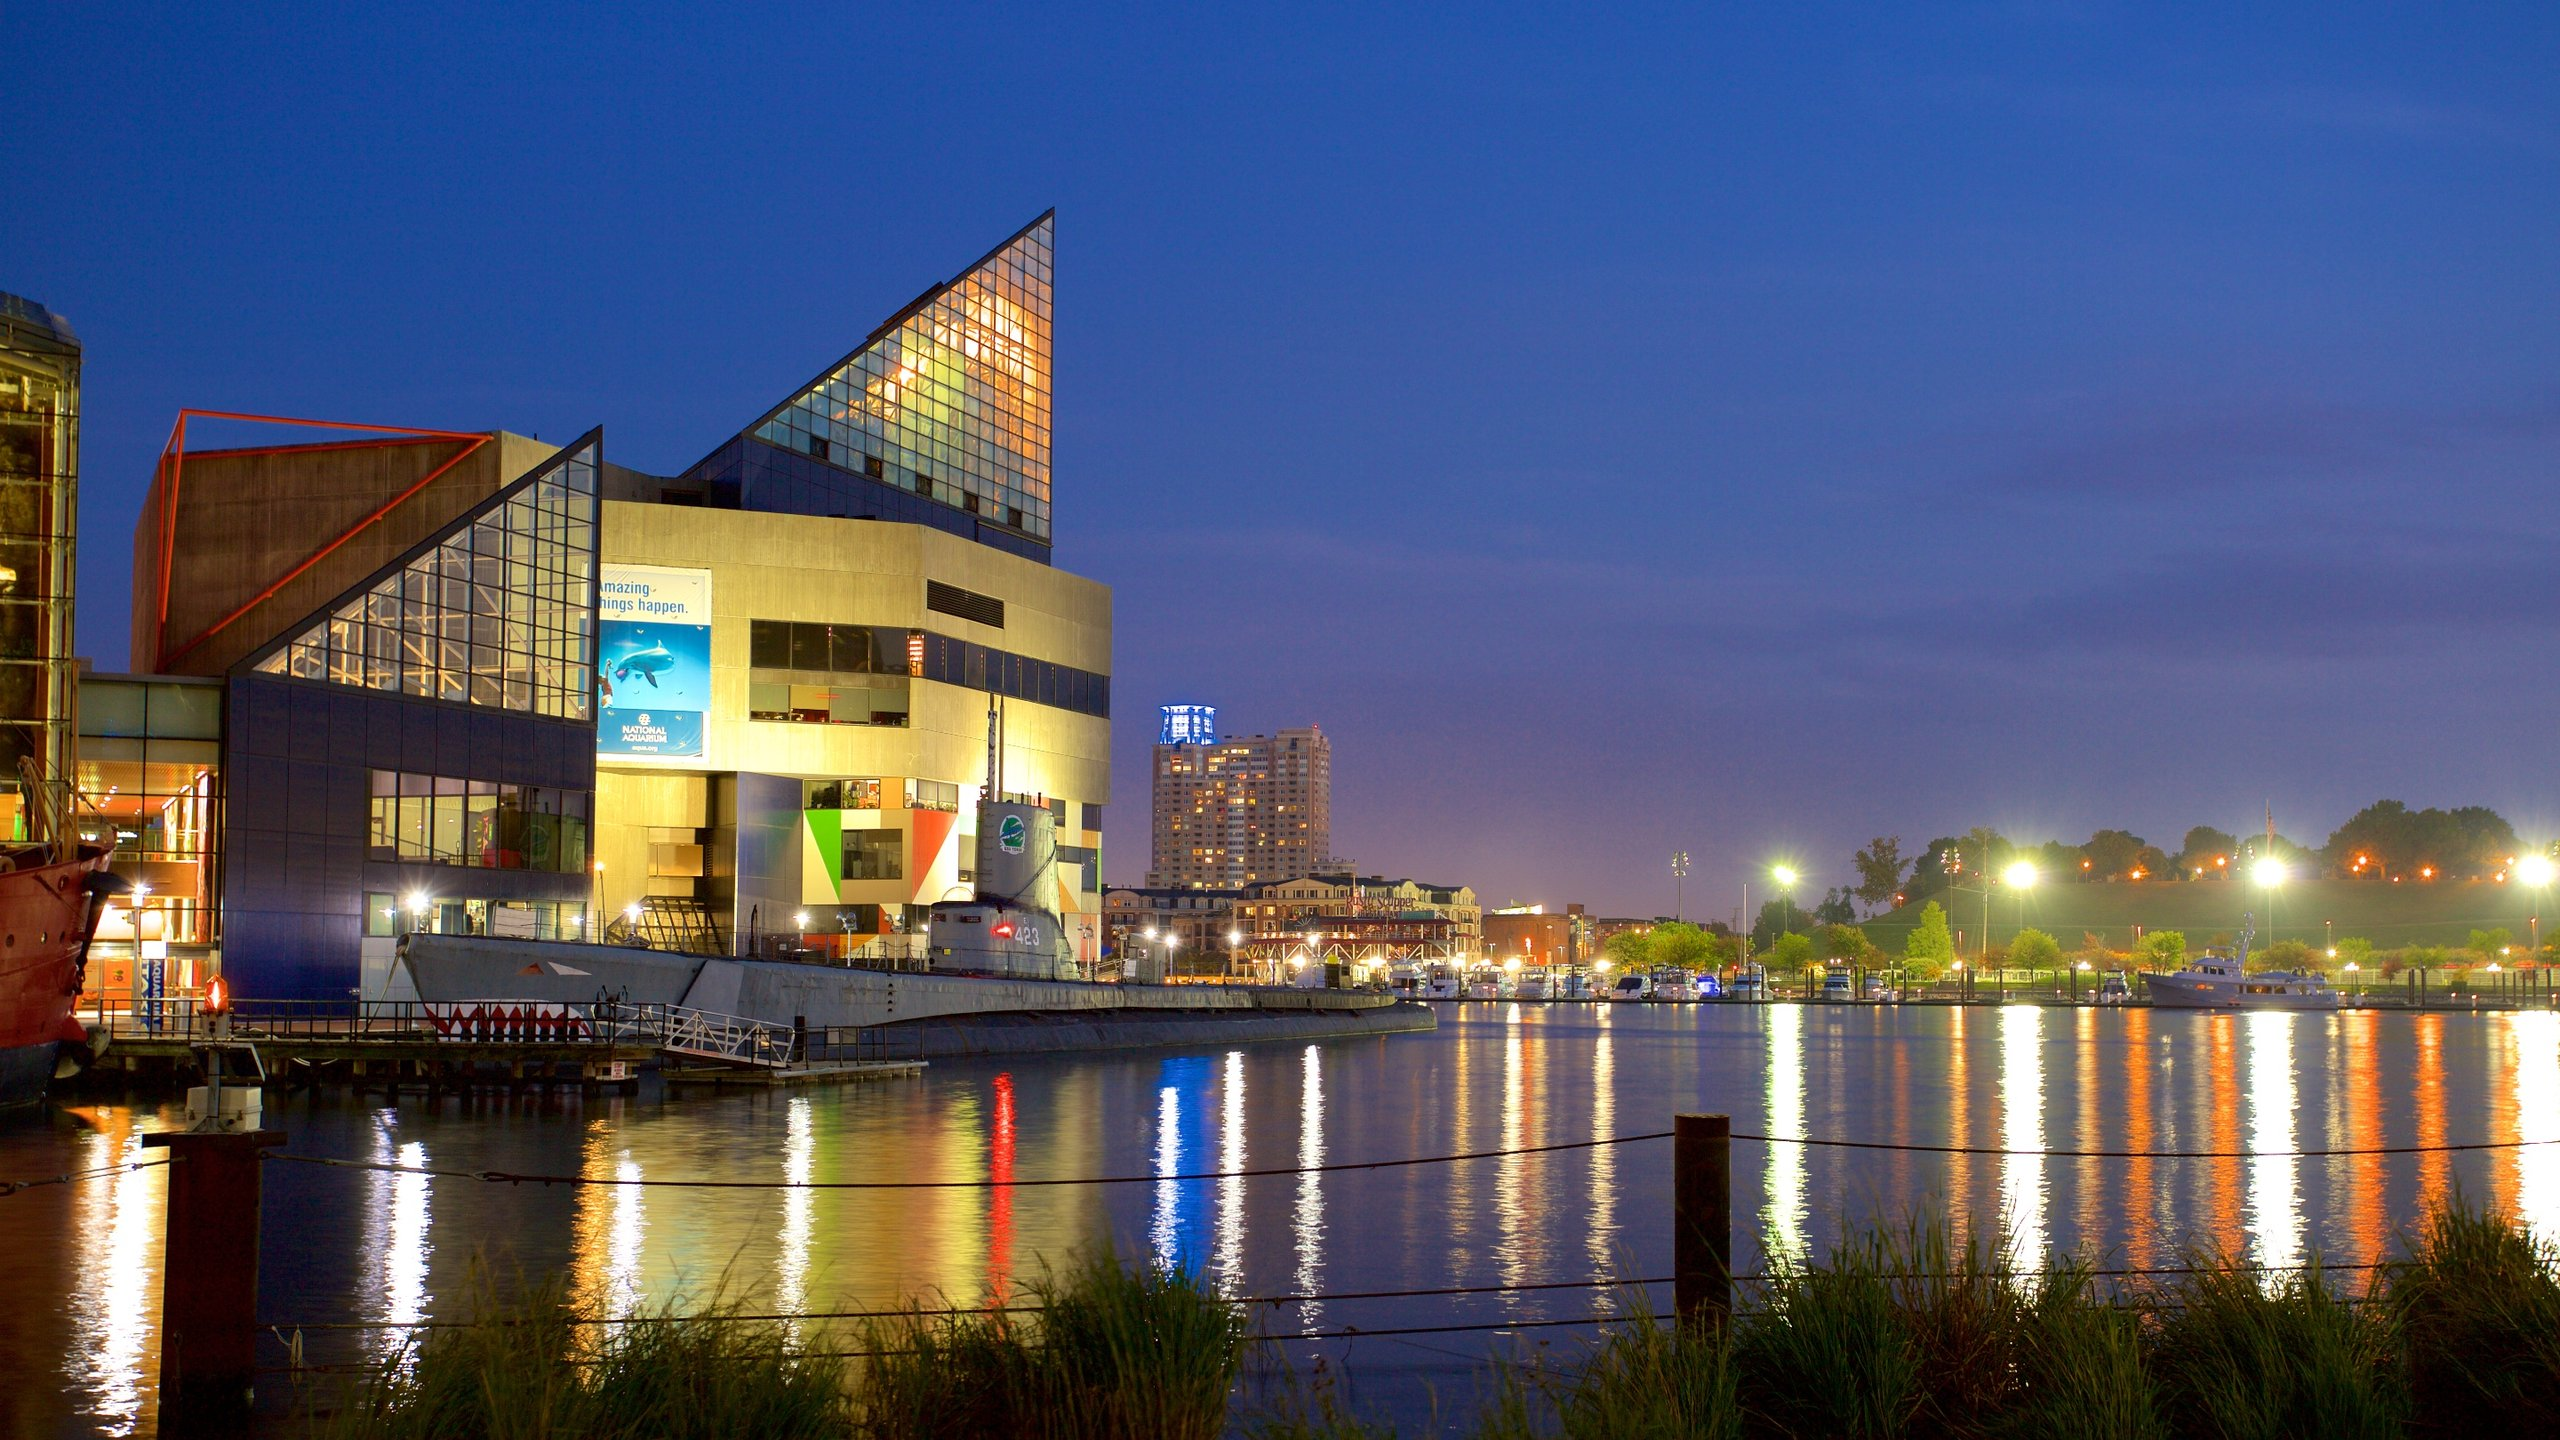 The Best Hotels Closest to National Aquarium in Baltimore ...